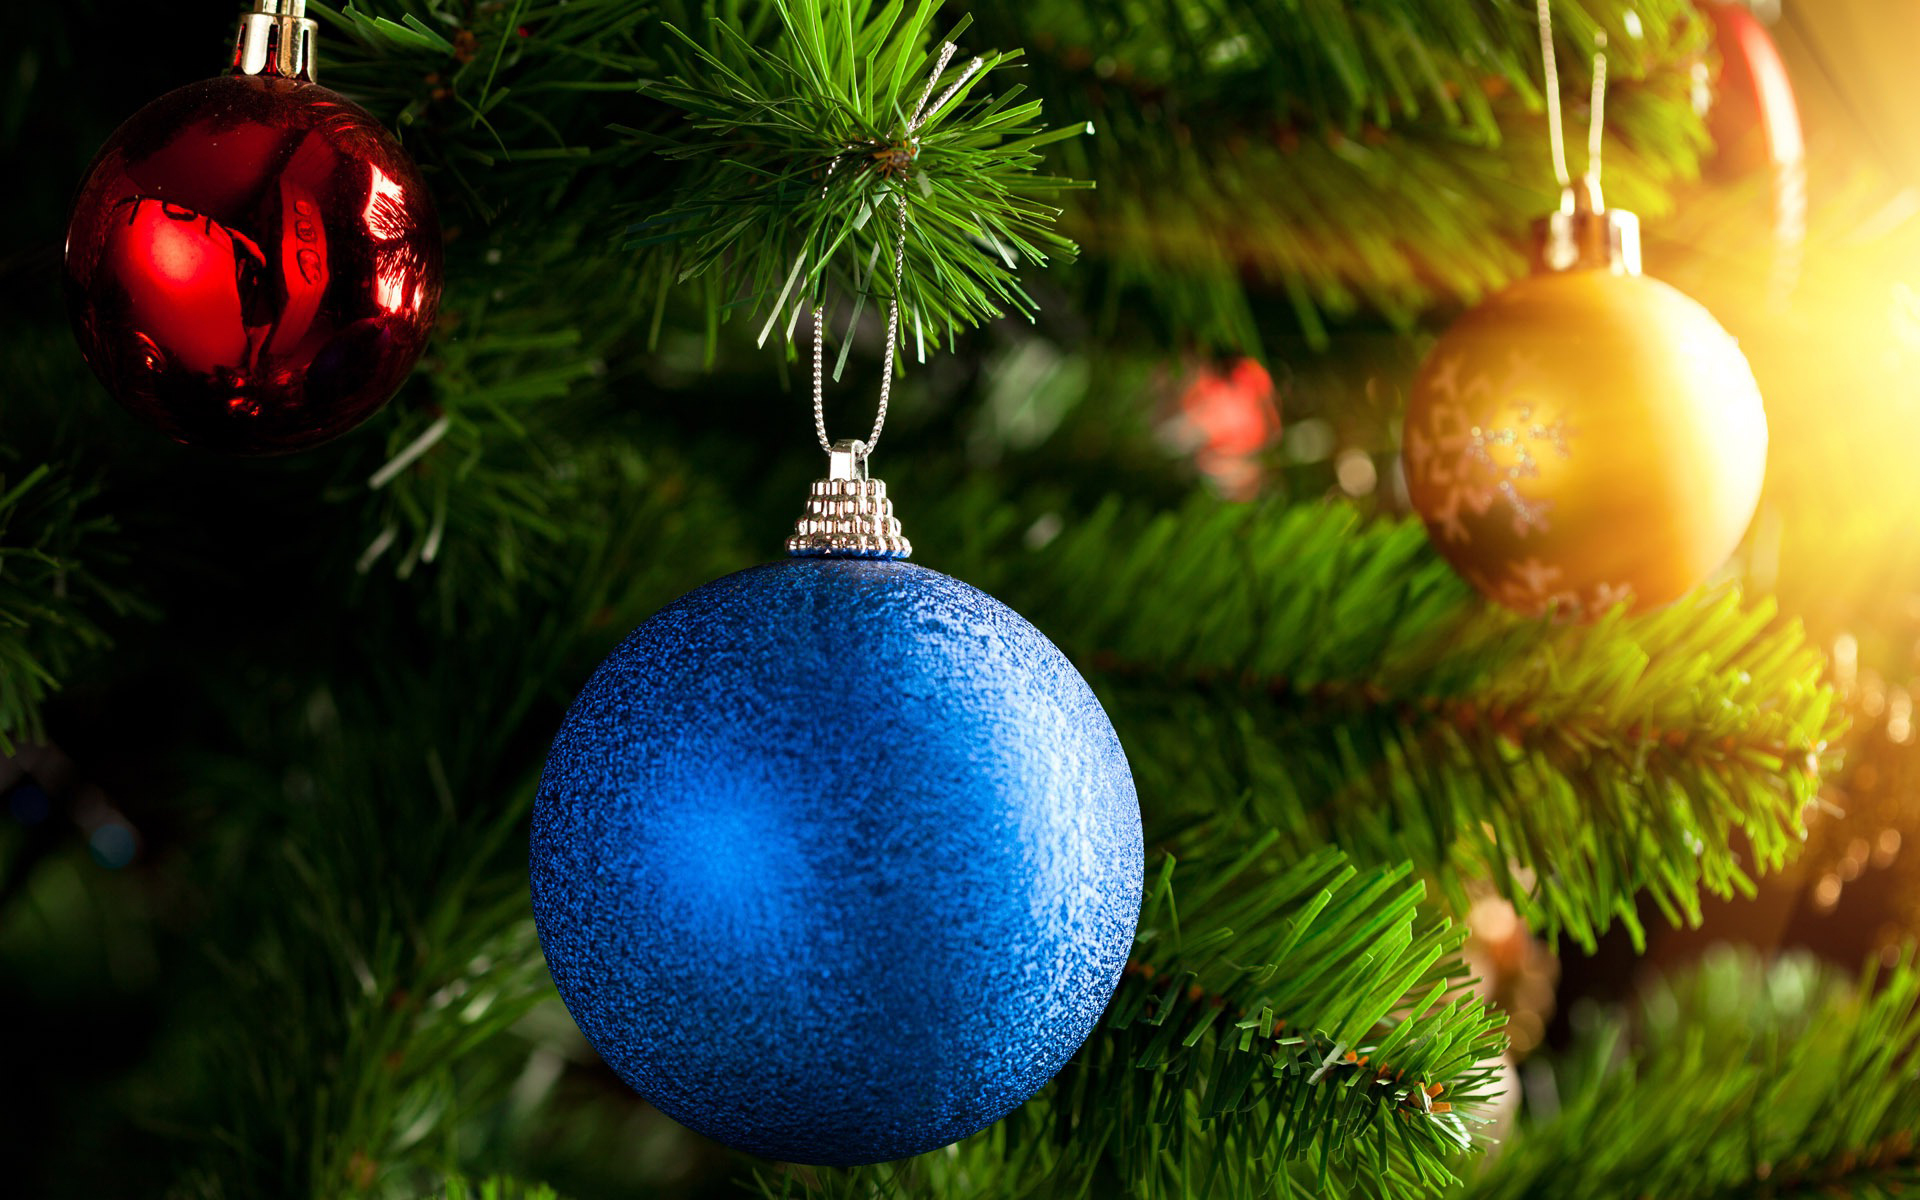 christmas-tree-bauble-wallpaper-1